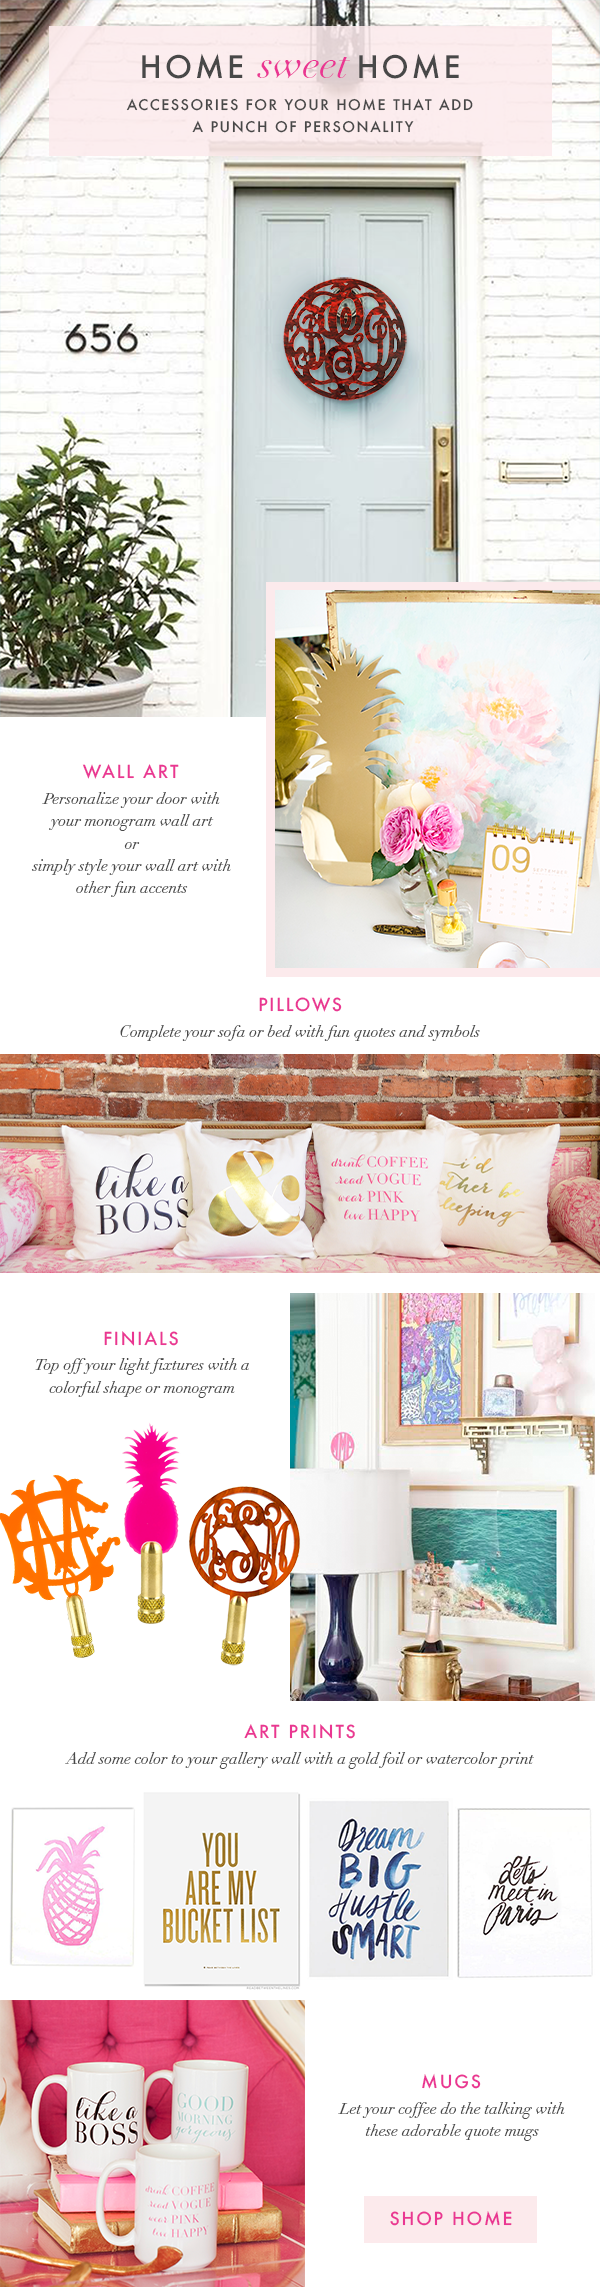 Home-Decor-Email